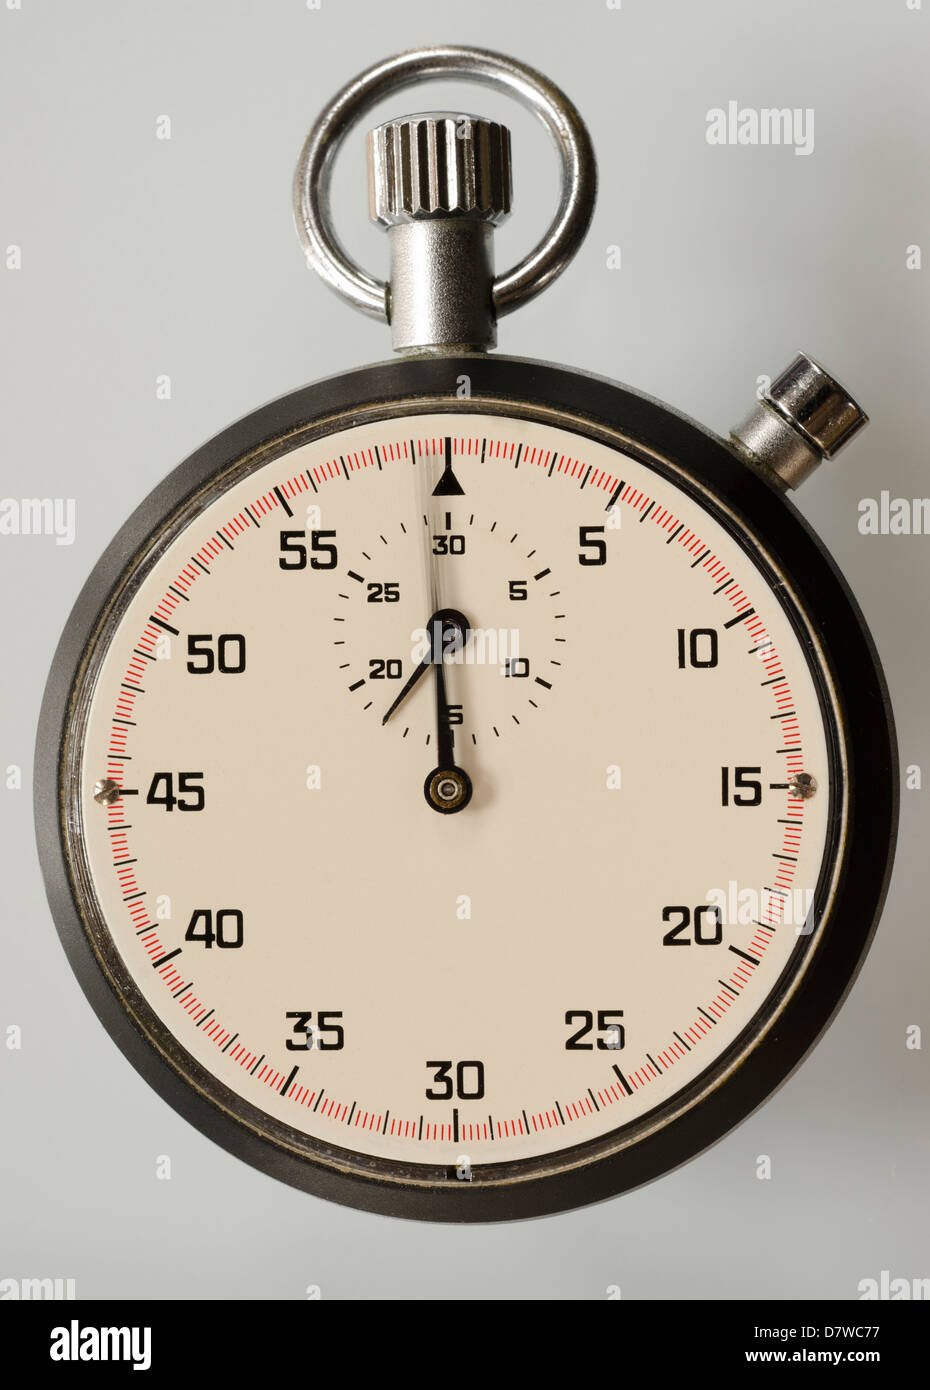 close-up of a stopwatch - Stock Image